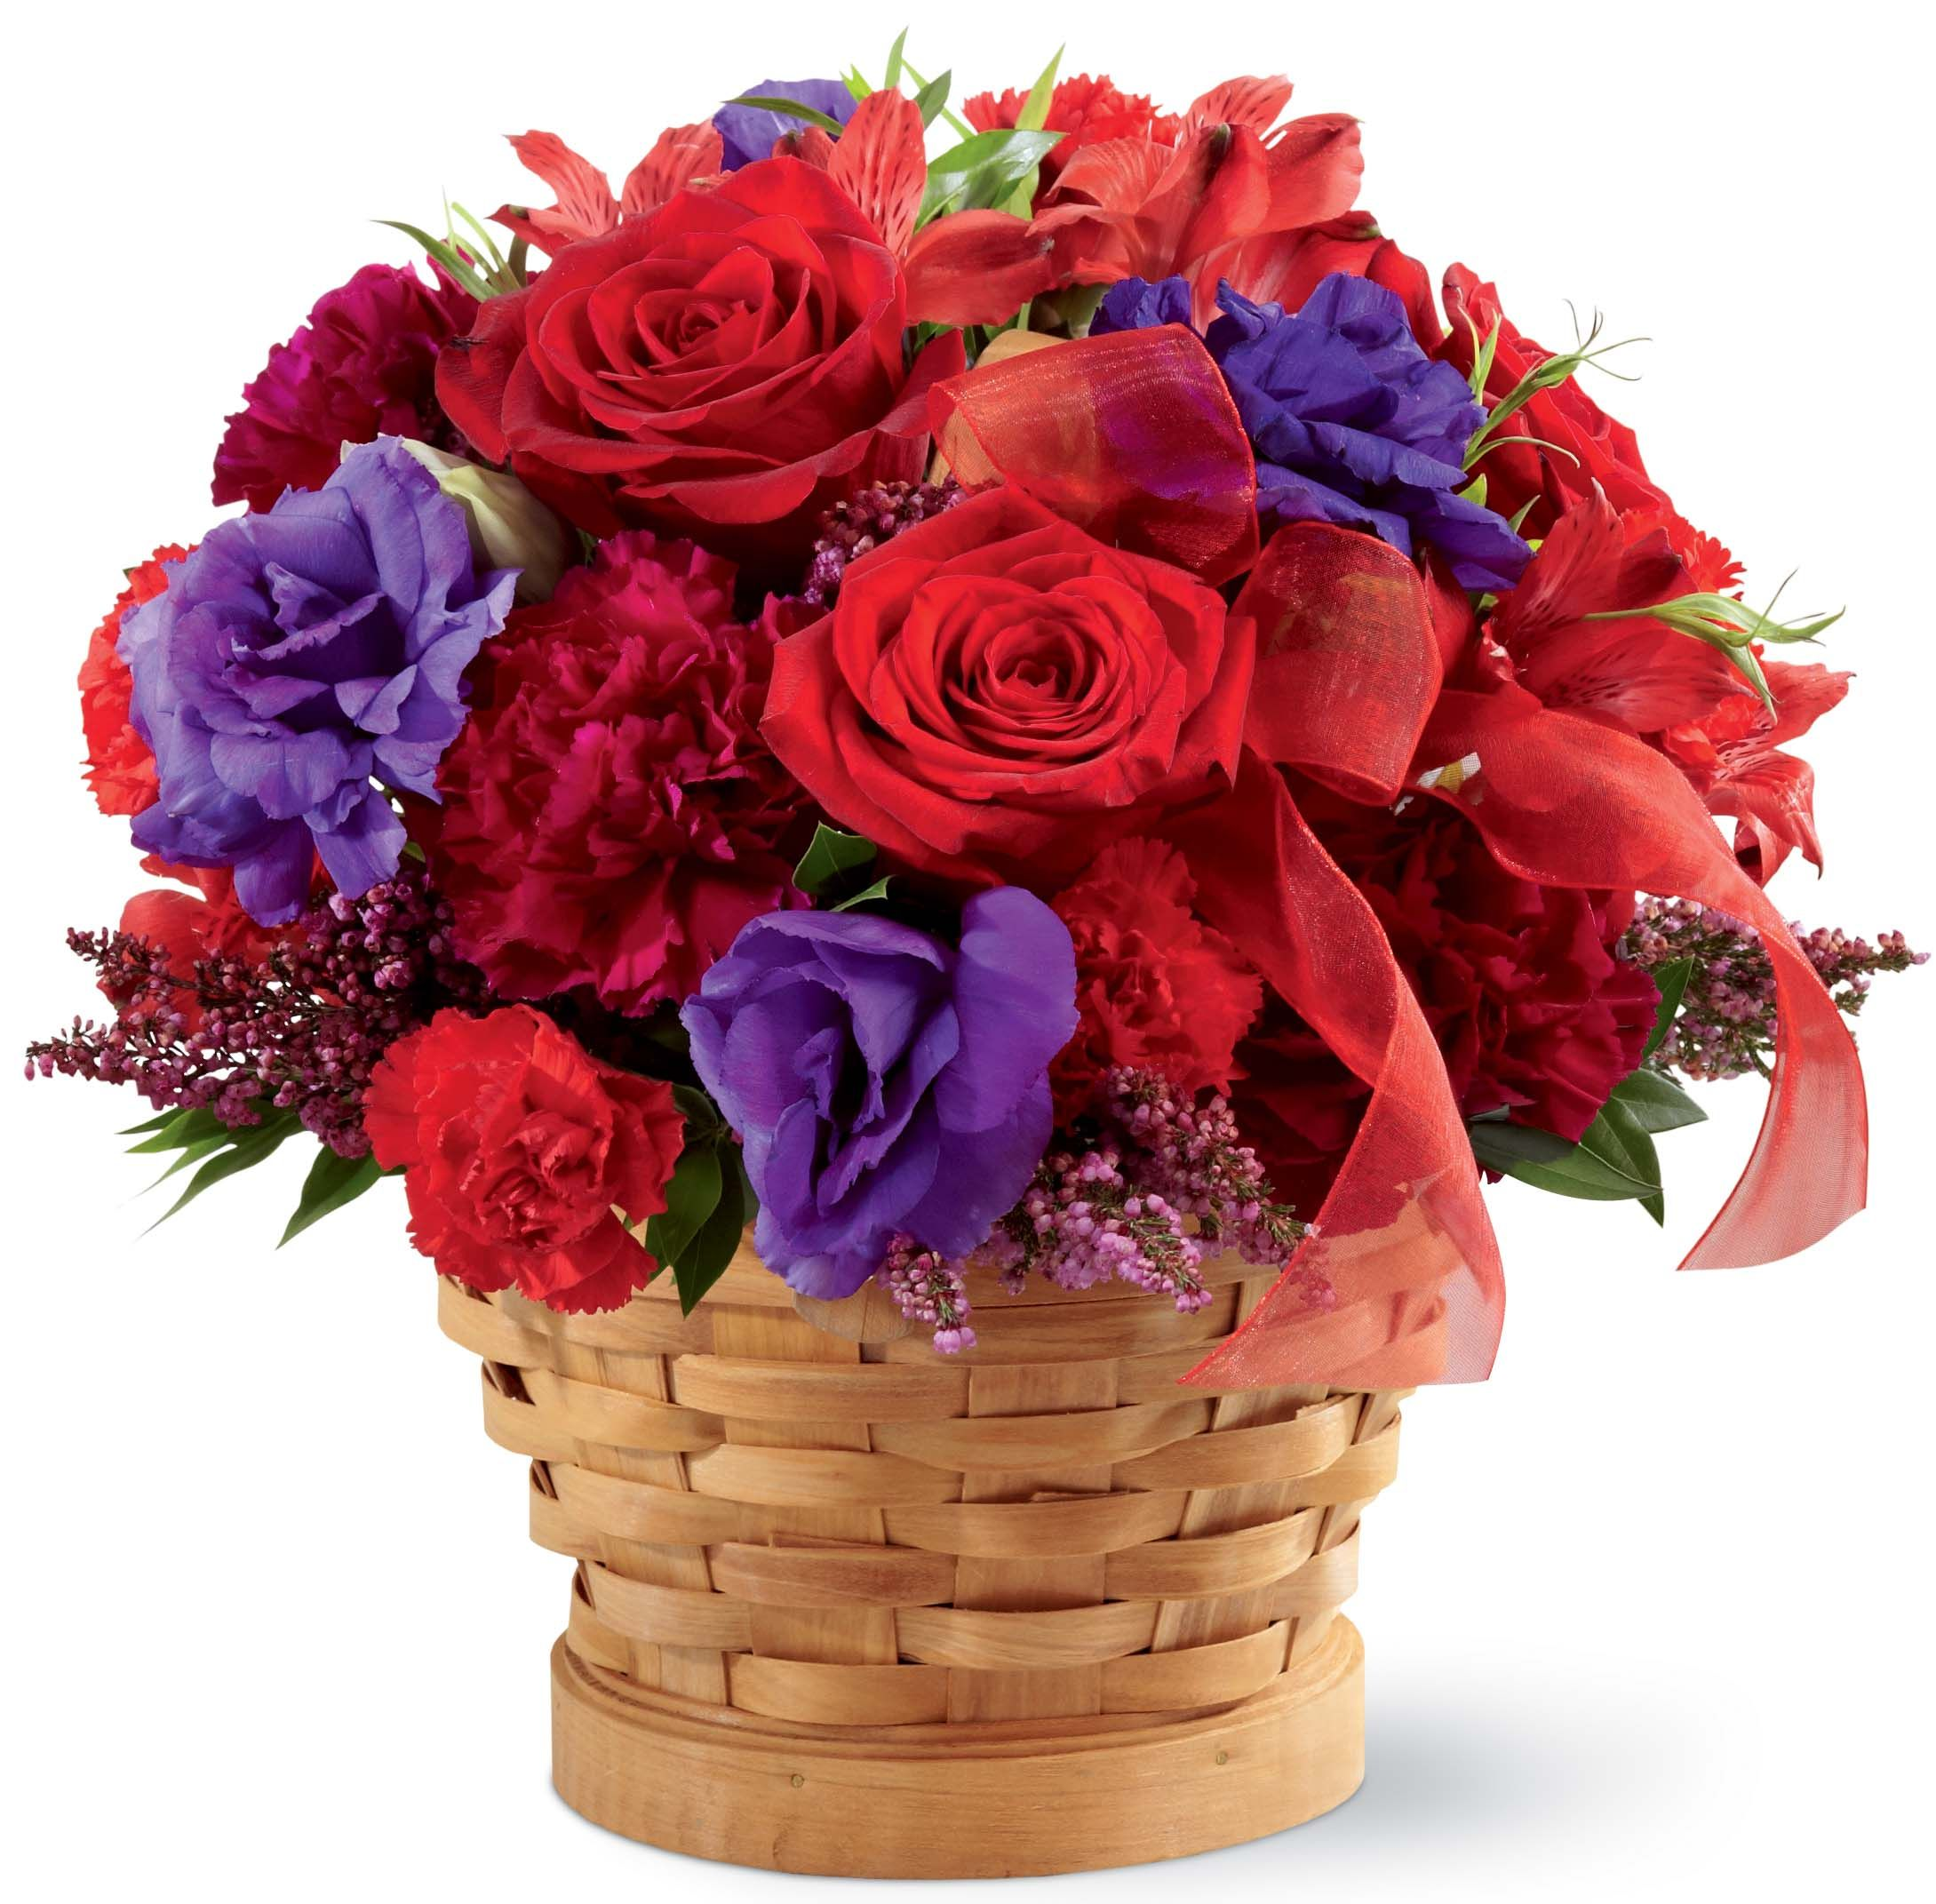 This pretty basket is filled with popular blooms in shades